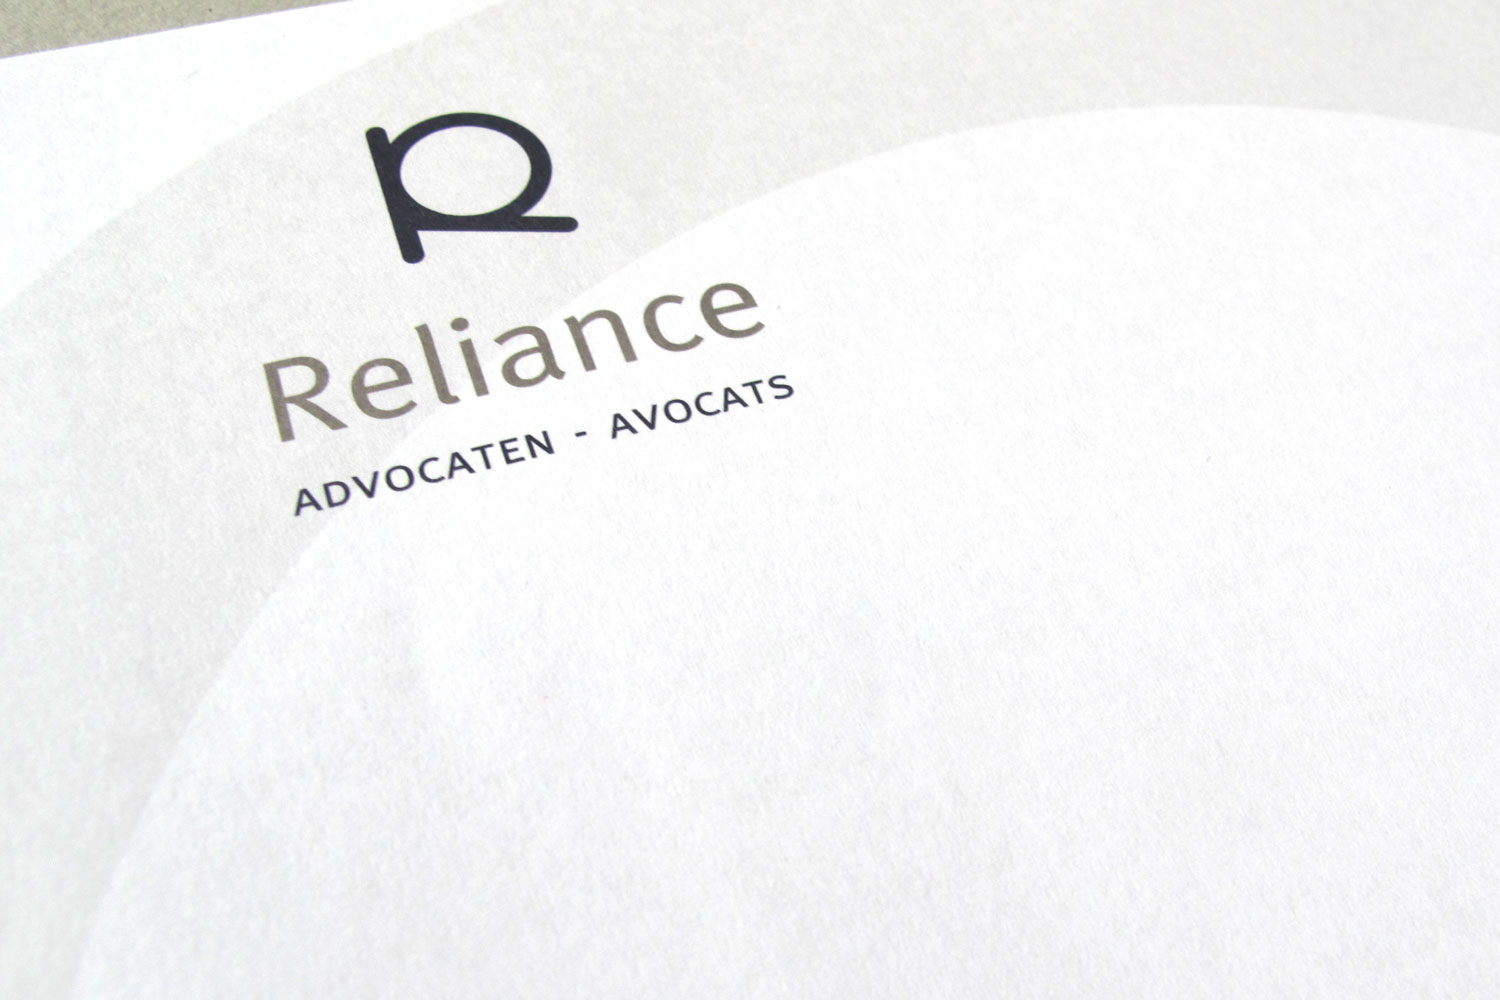 3_crabgraphic_logo_Reliance